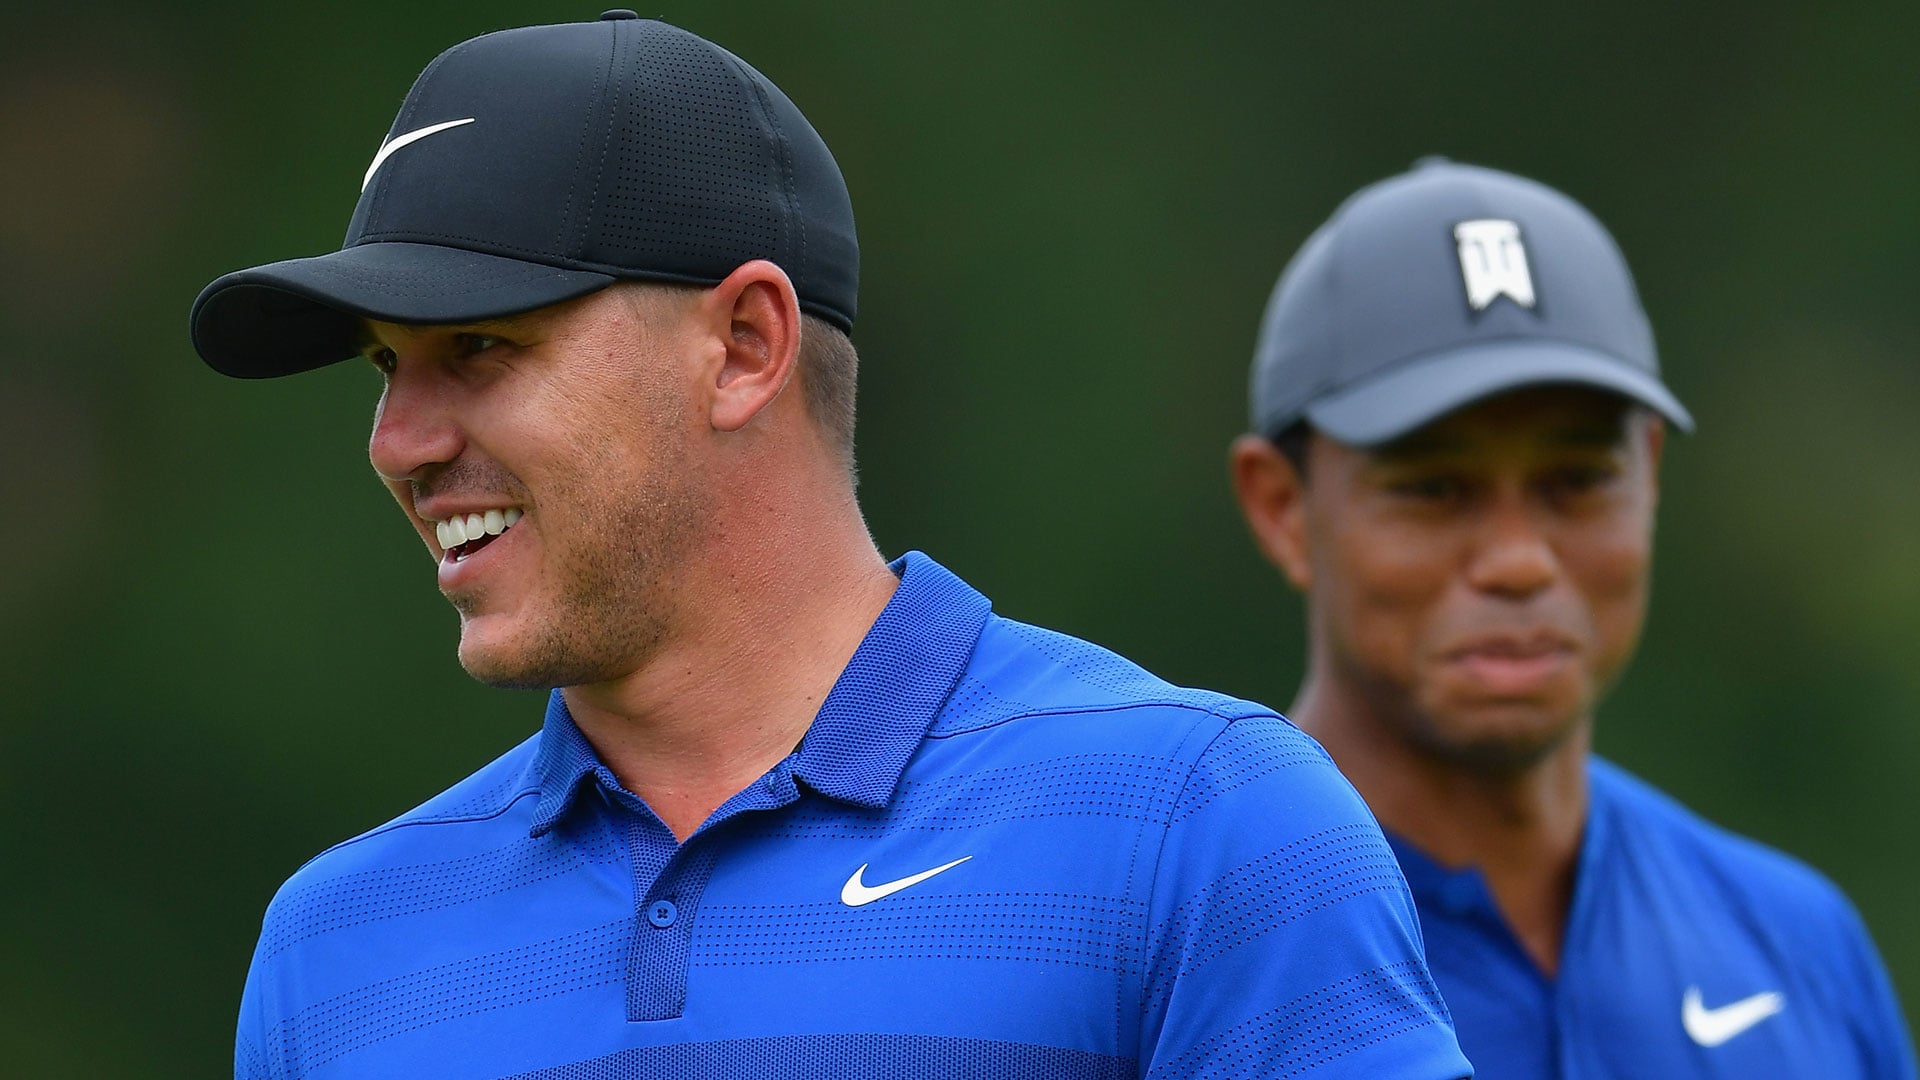 Did Brooks Koepka ghost Tiger Woods ahead of The Open Championship? - NoleGameday